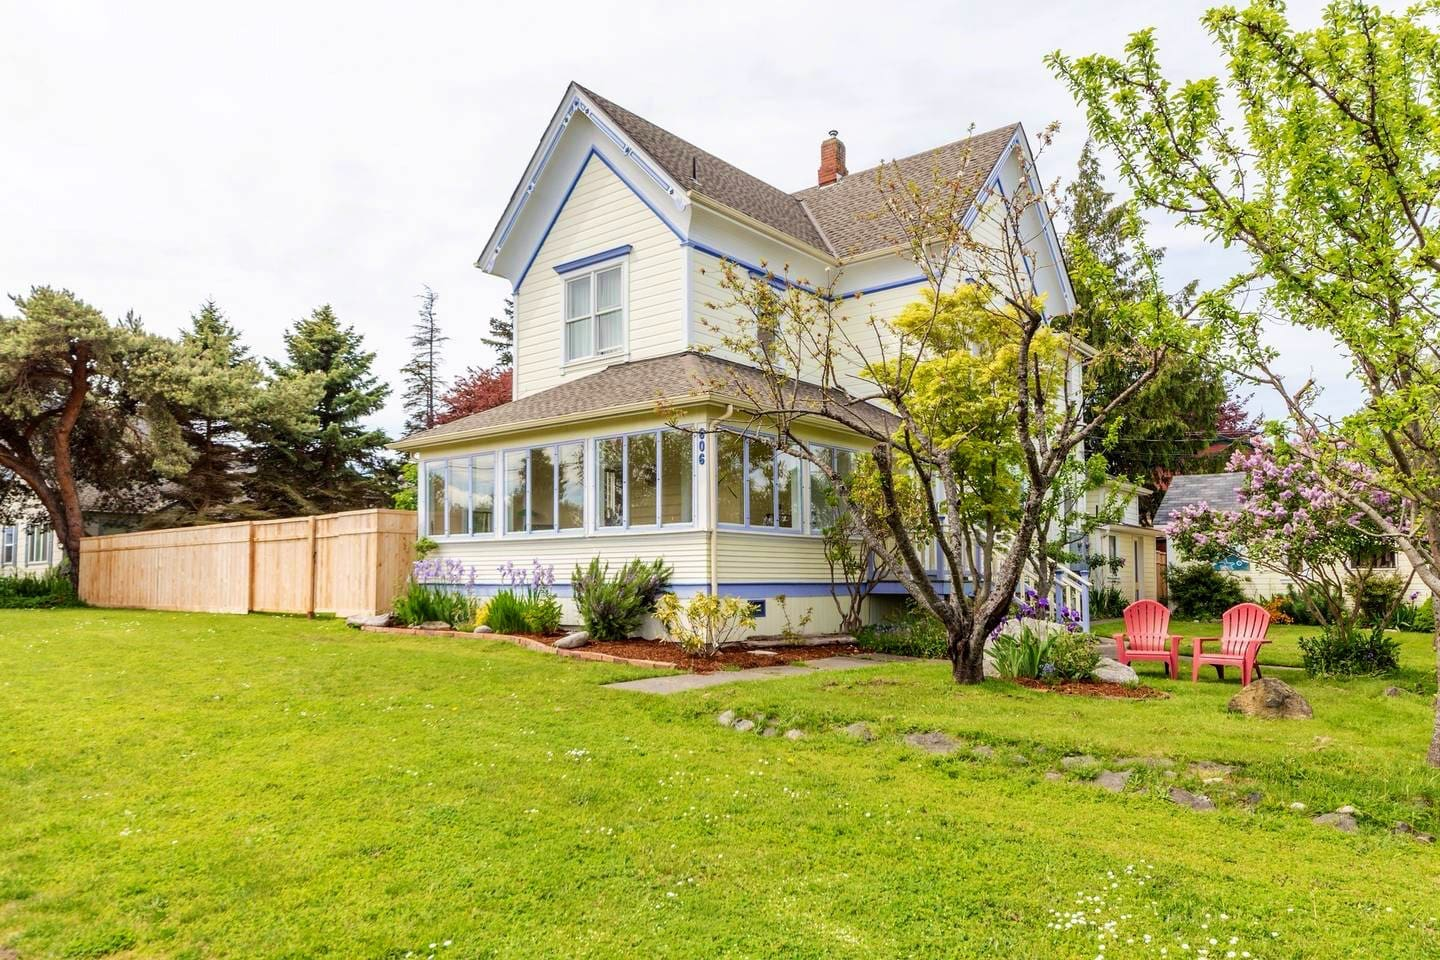 Large Victorian farmhouse! 5 bedrooms, 4 bathrooms and a yard! Just blocks from it all!